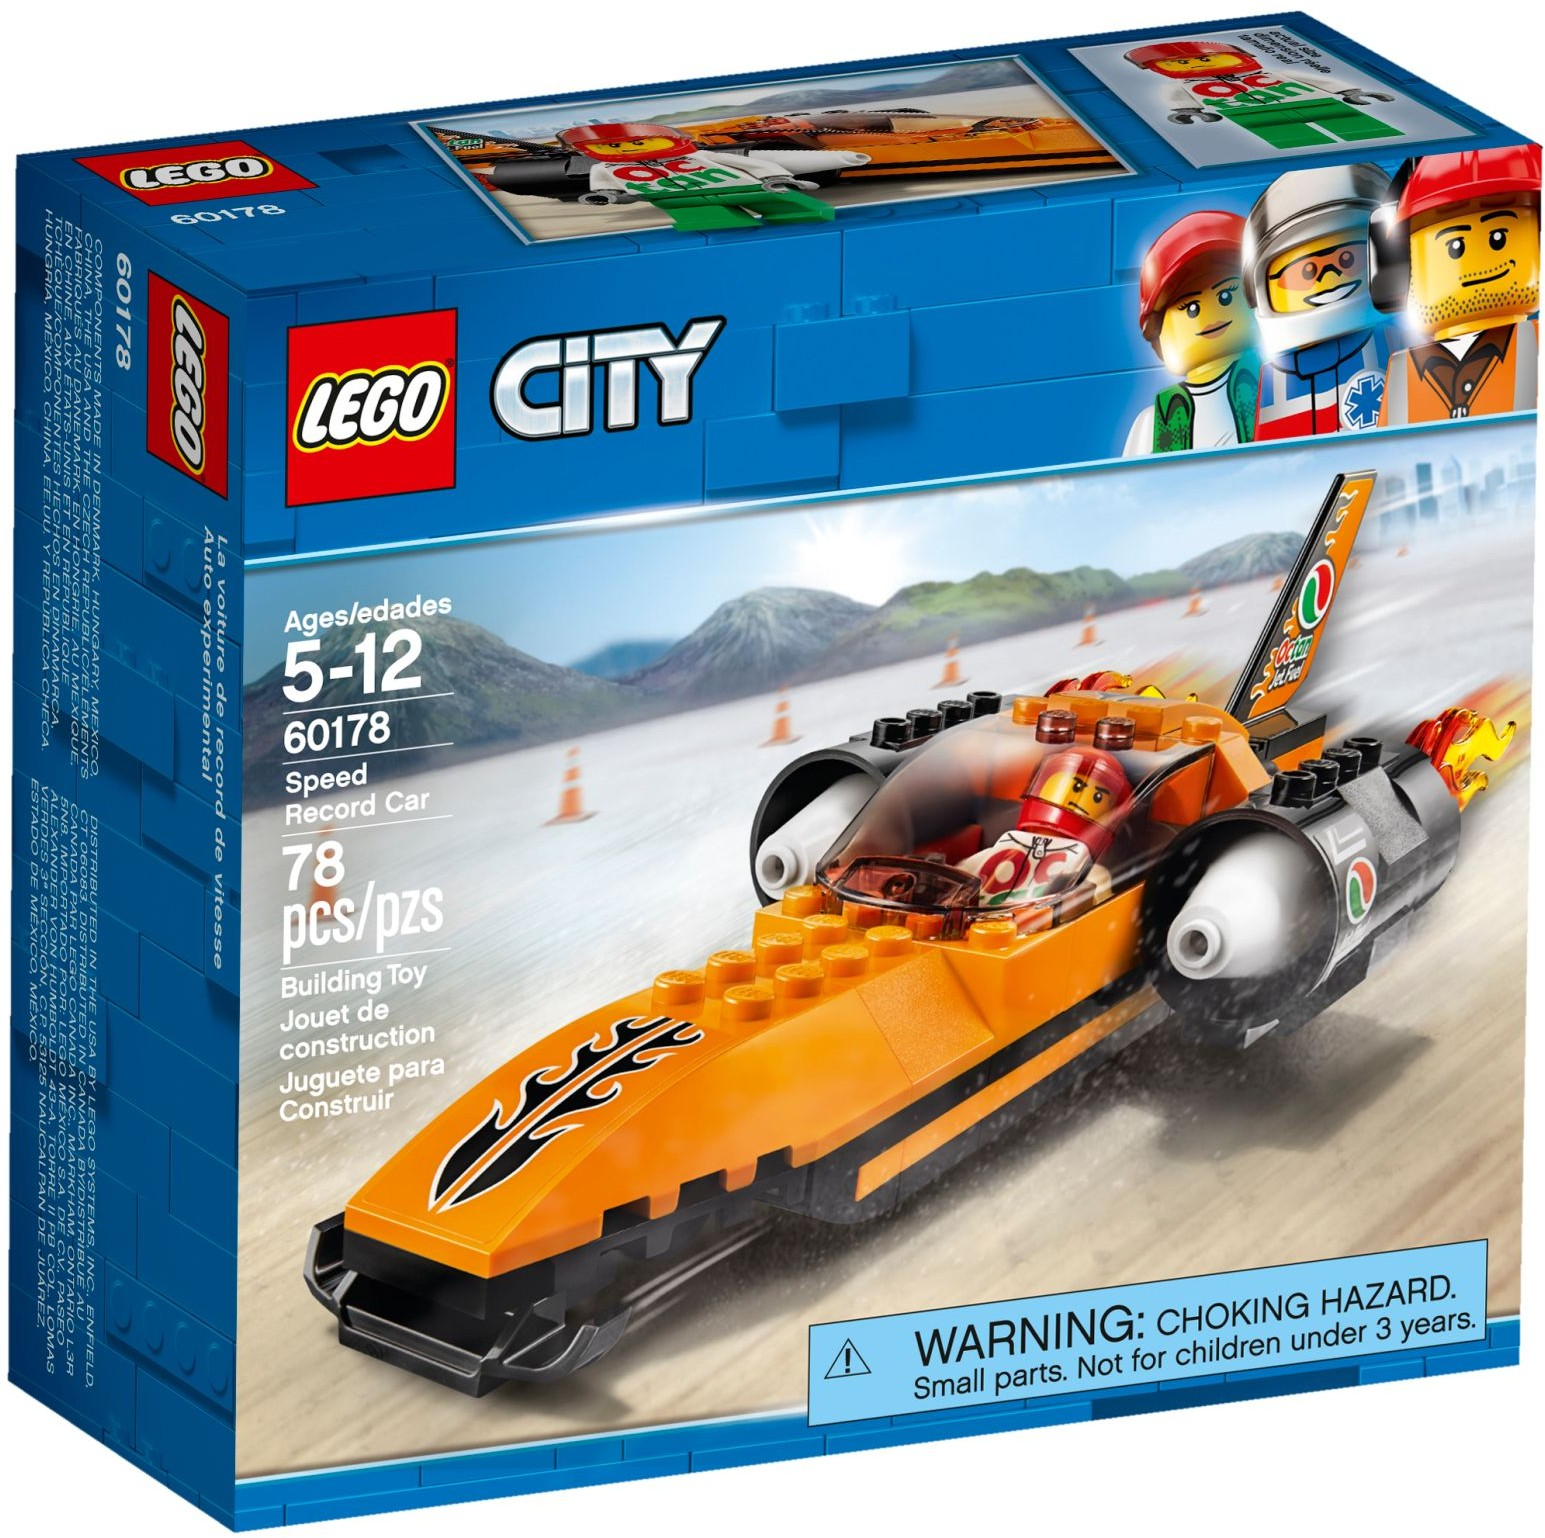 LEGO City Great Vehicles 60178 Rychlostní auto